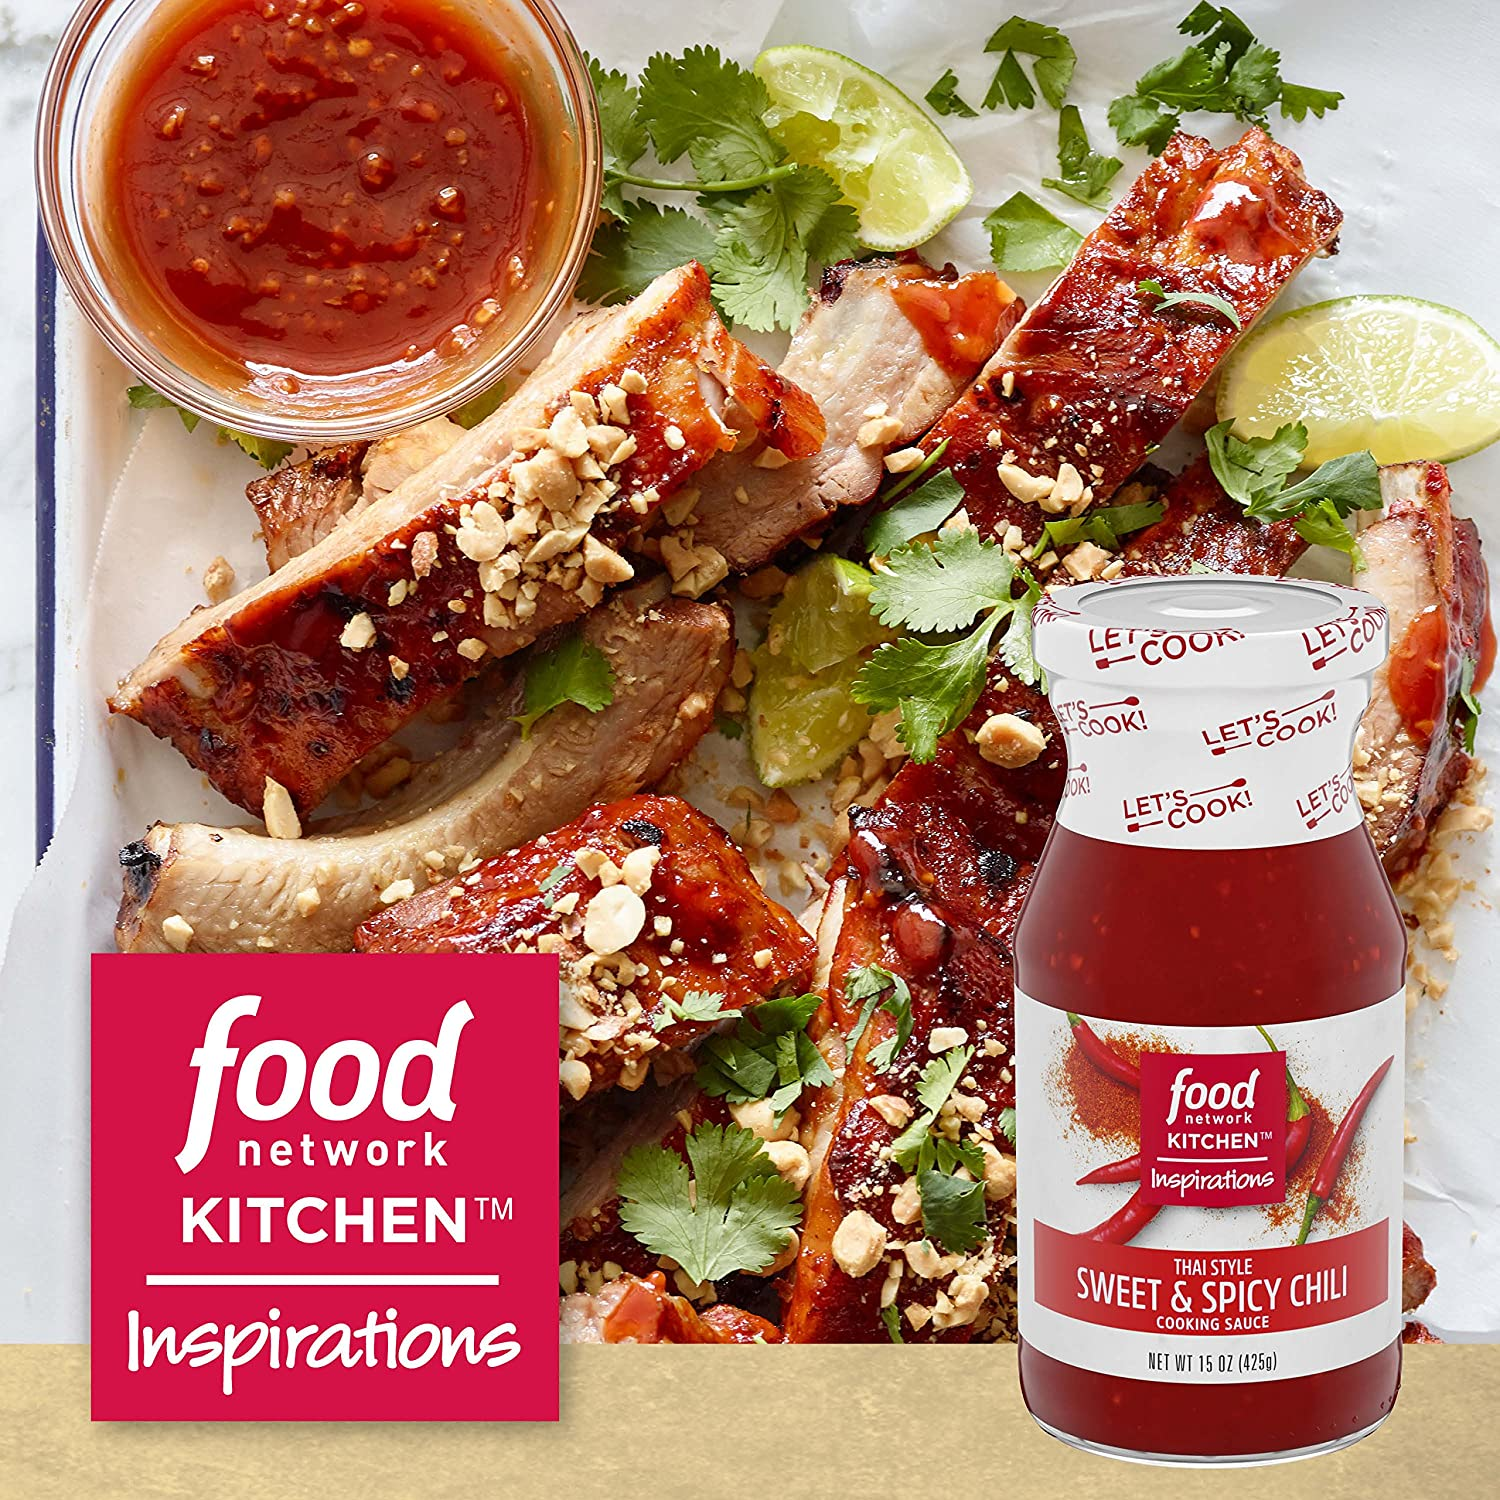 Amazon Com Food Network Kitchen Inspirations Thai Style Sweet Spicy Chili Cooking Sauce 15 Oz Bottle Grocery Gourmet Food